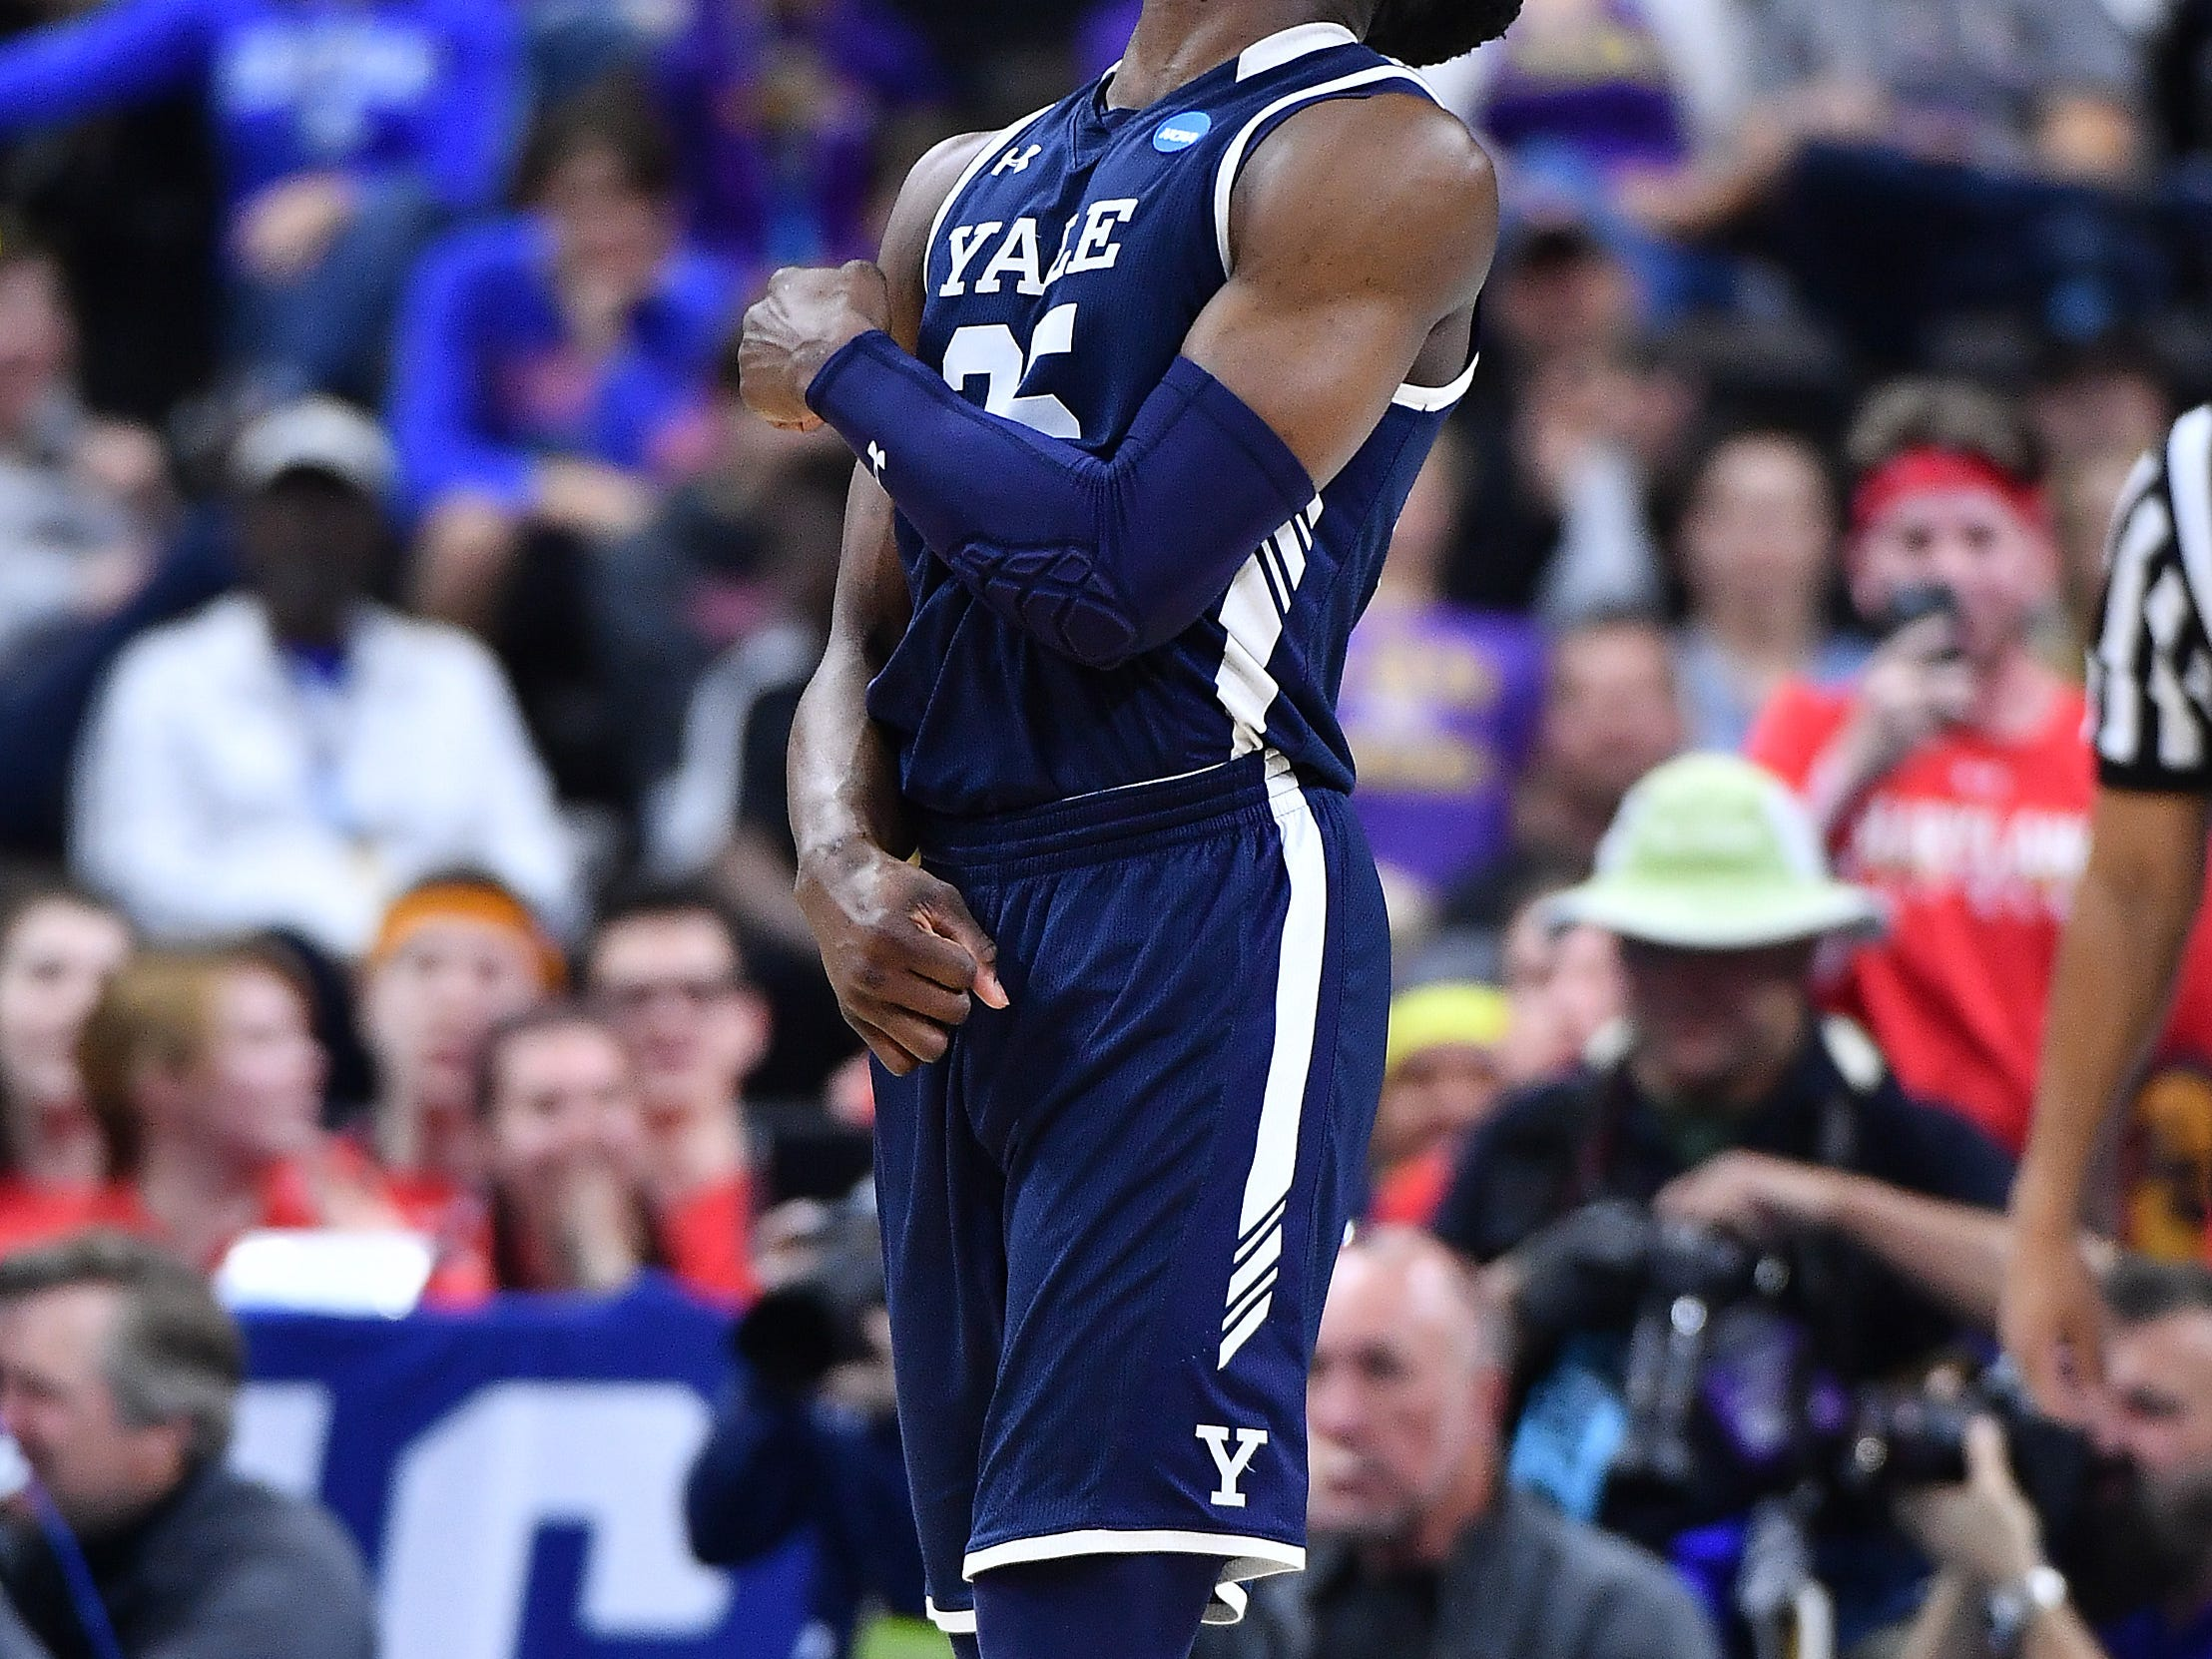 Mar 21, 2019; Jacksonville, FL, USA; Yale Bulldogs guard Miye Oni (25) reacts after a play against the LSU Tigers during the second half in the first round of the 2019 NCAA Tournament at Jacksonville Veterans Memorial Arena. Mandatory Credit: John David Mercer-USA TODAY Sports